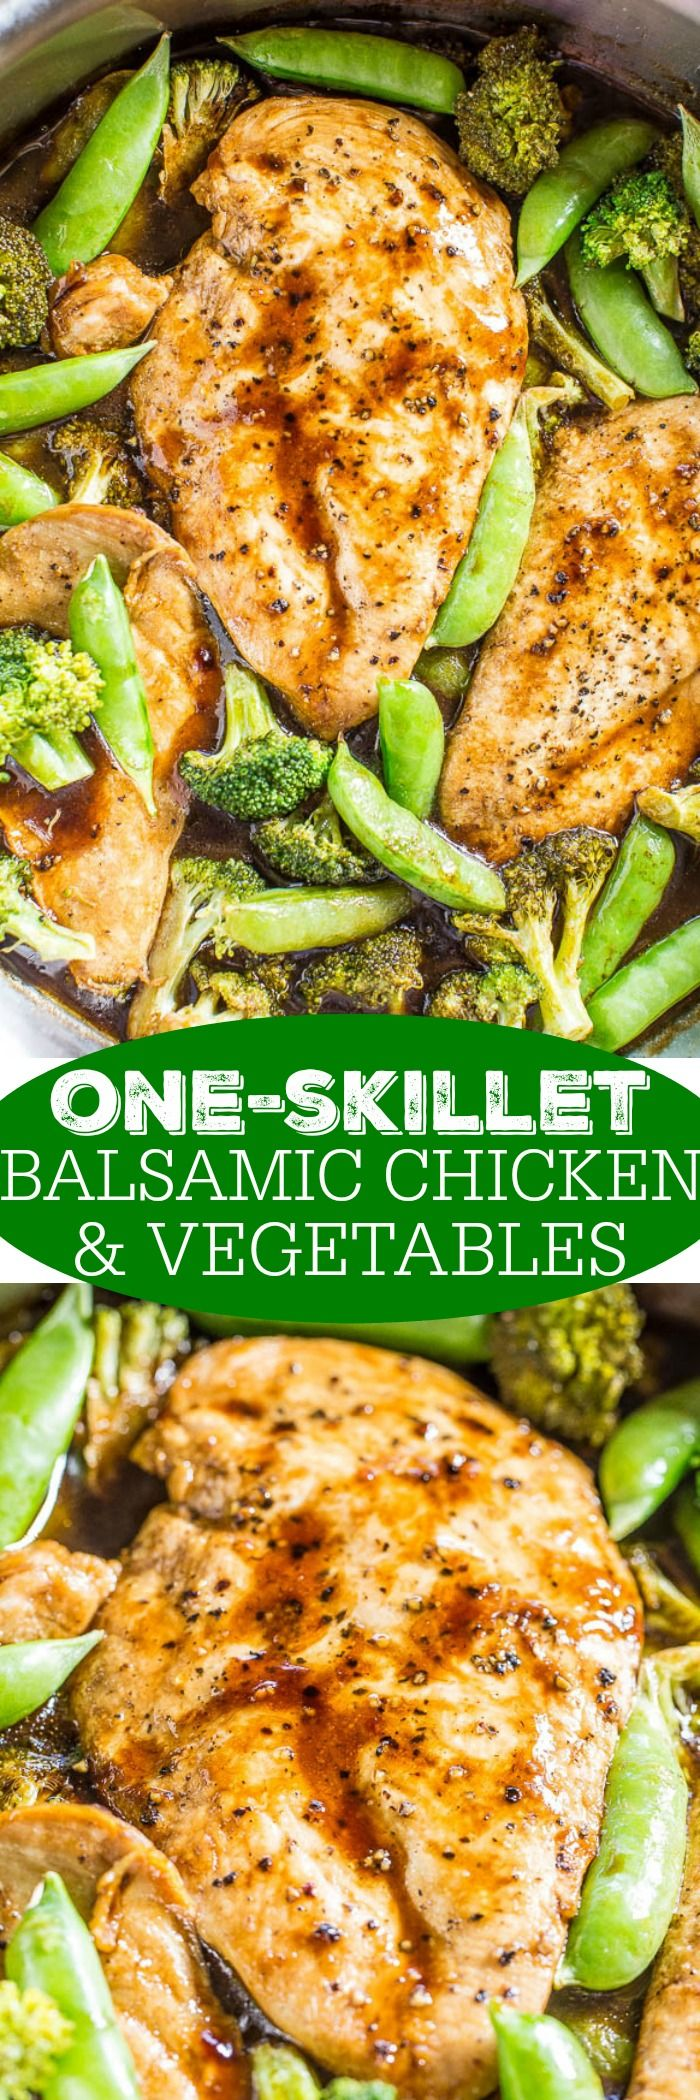 One-Skillet Balsamic Chicken and Vegetables | chicken | Pinterest ...